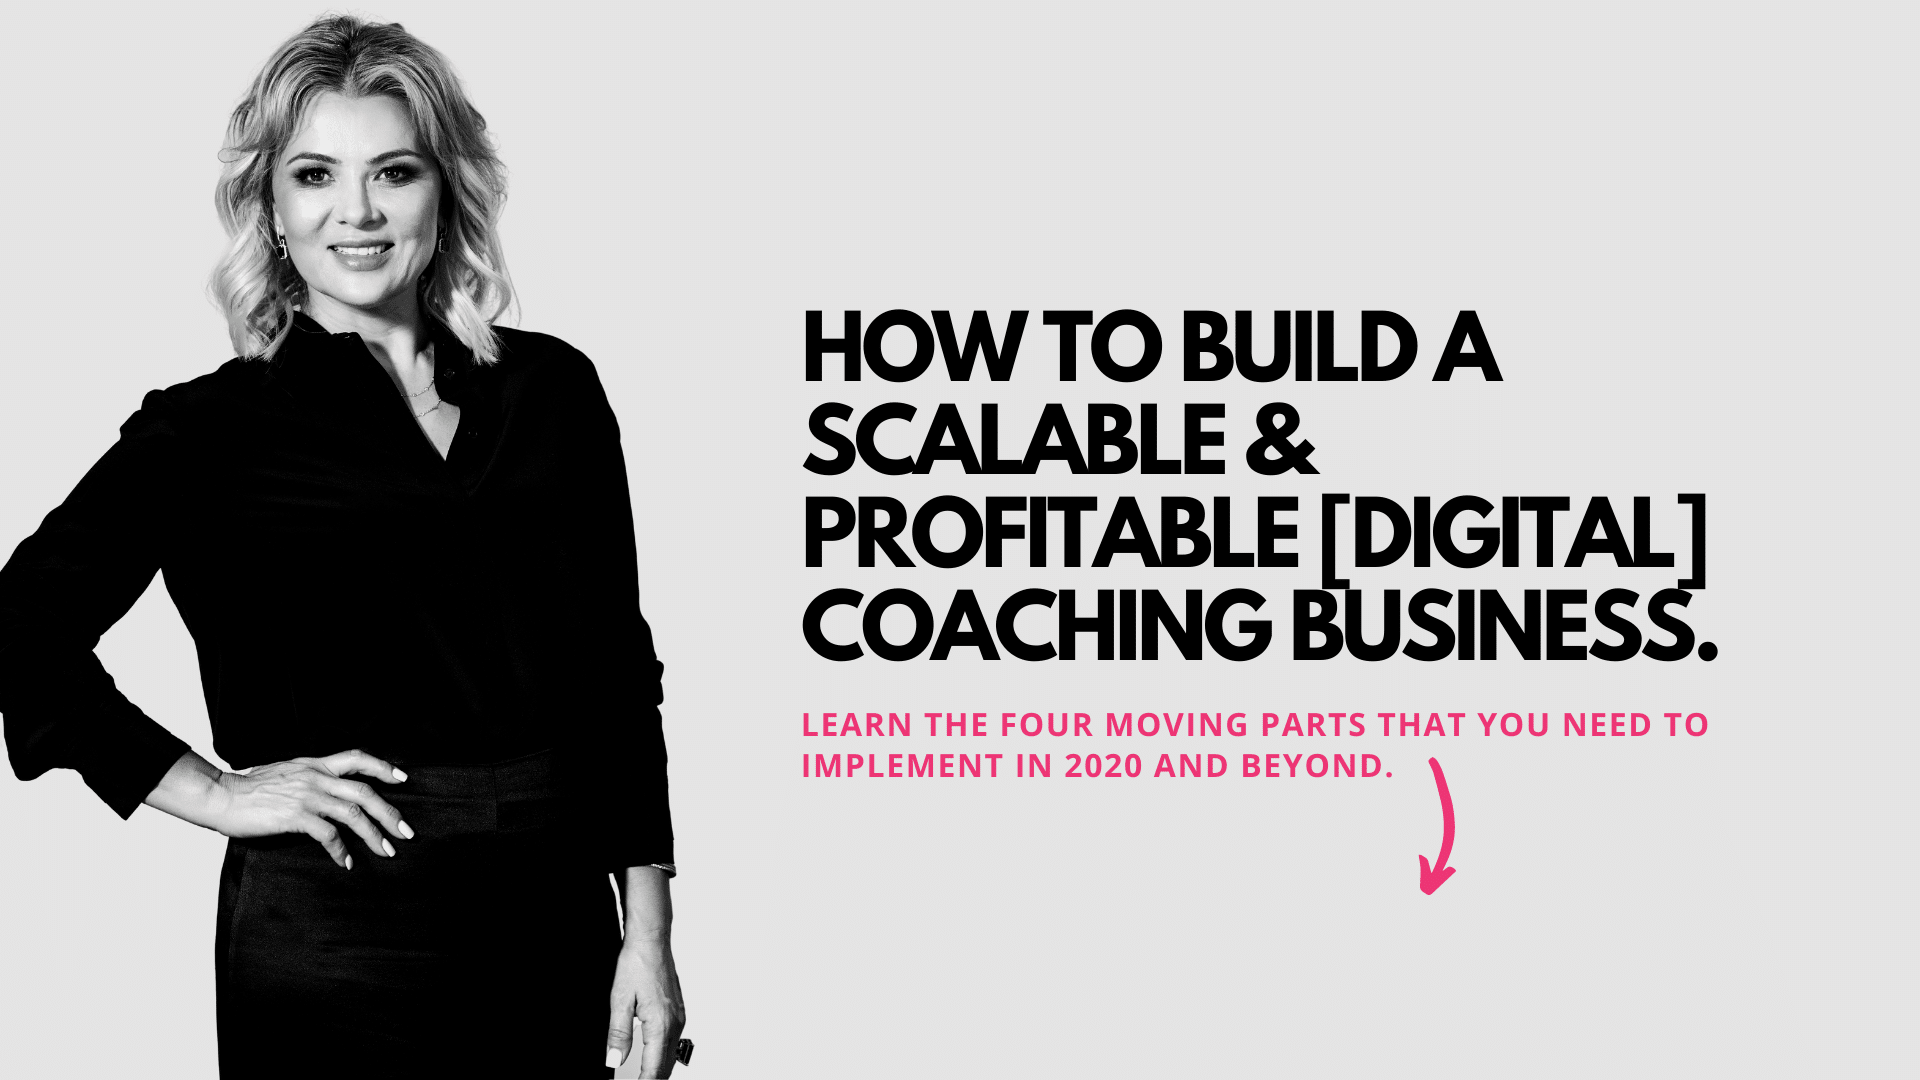 How to build a scalable & profitable digital coaching business.